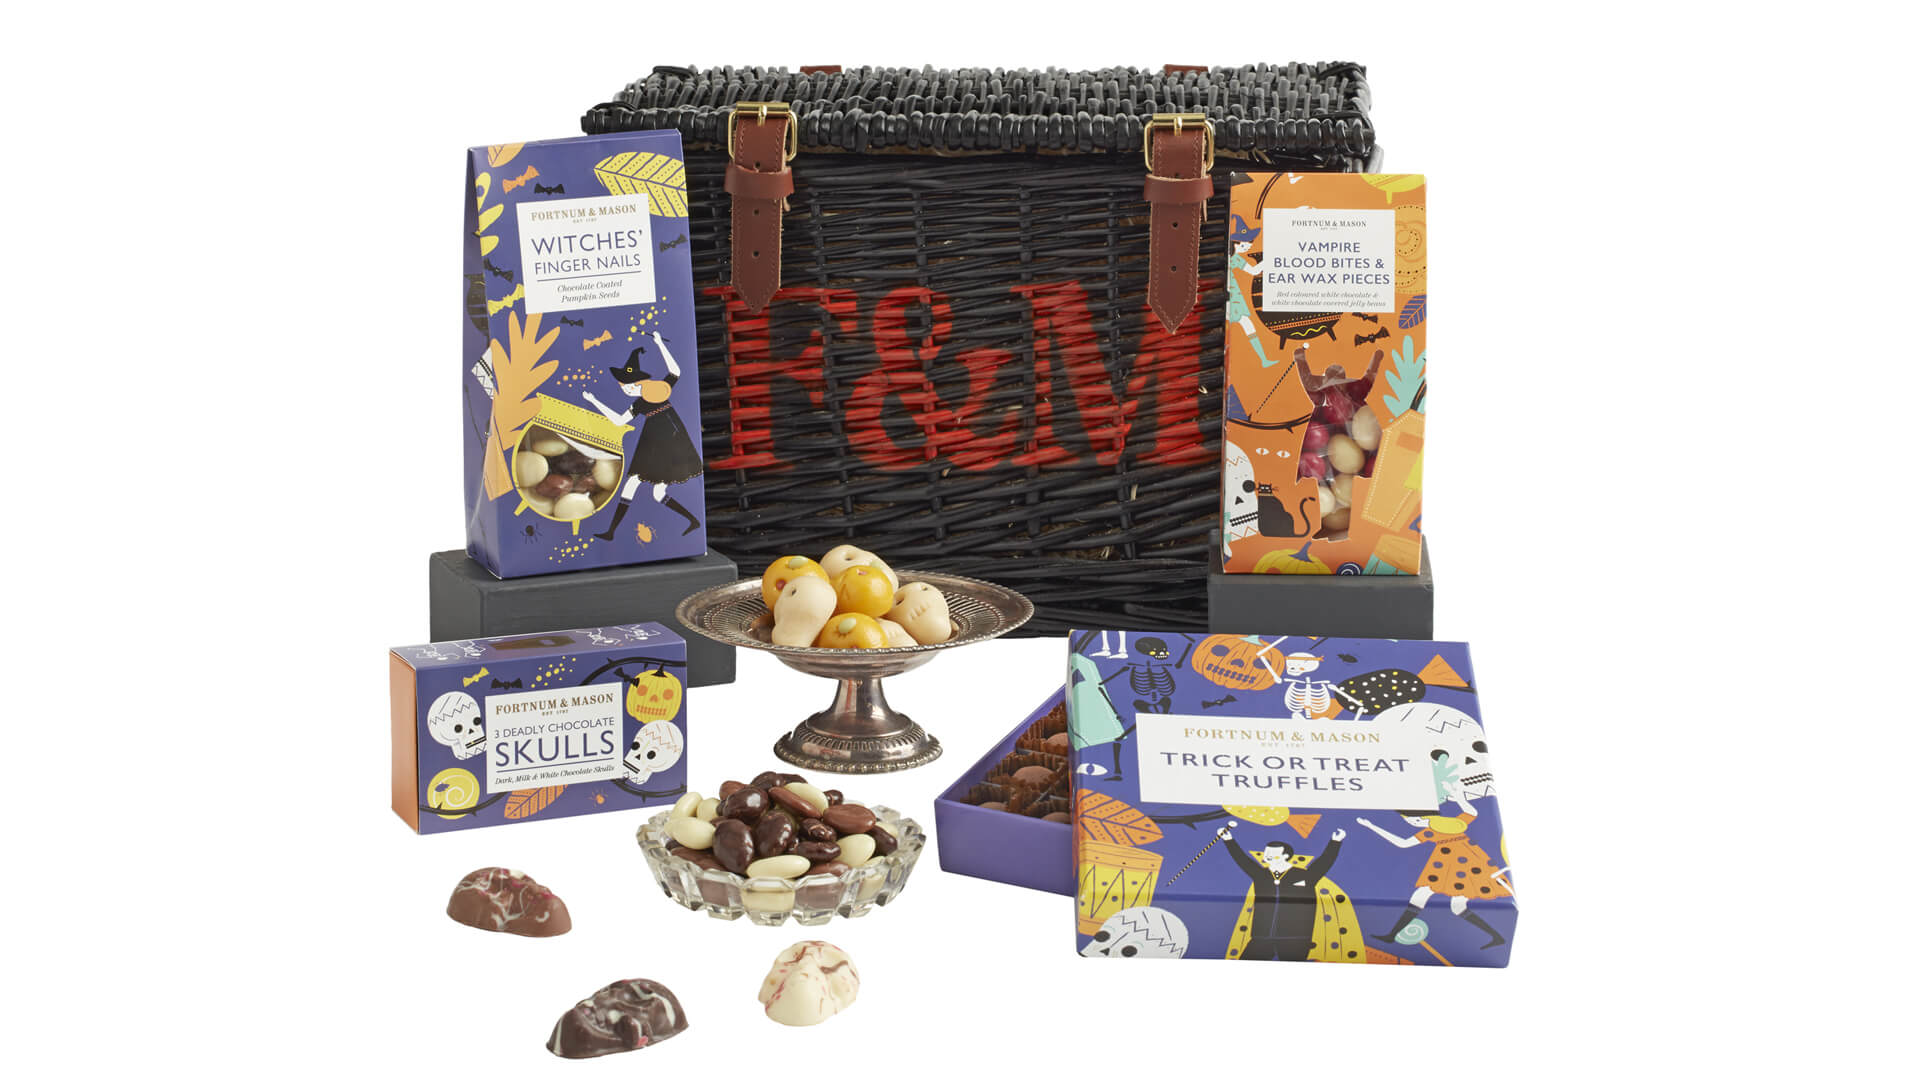 Fortnum & Mason The Wicked Wicker Halloween Hamper